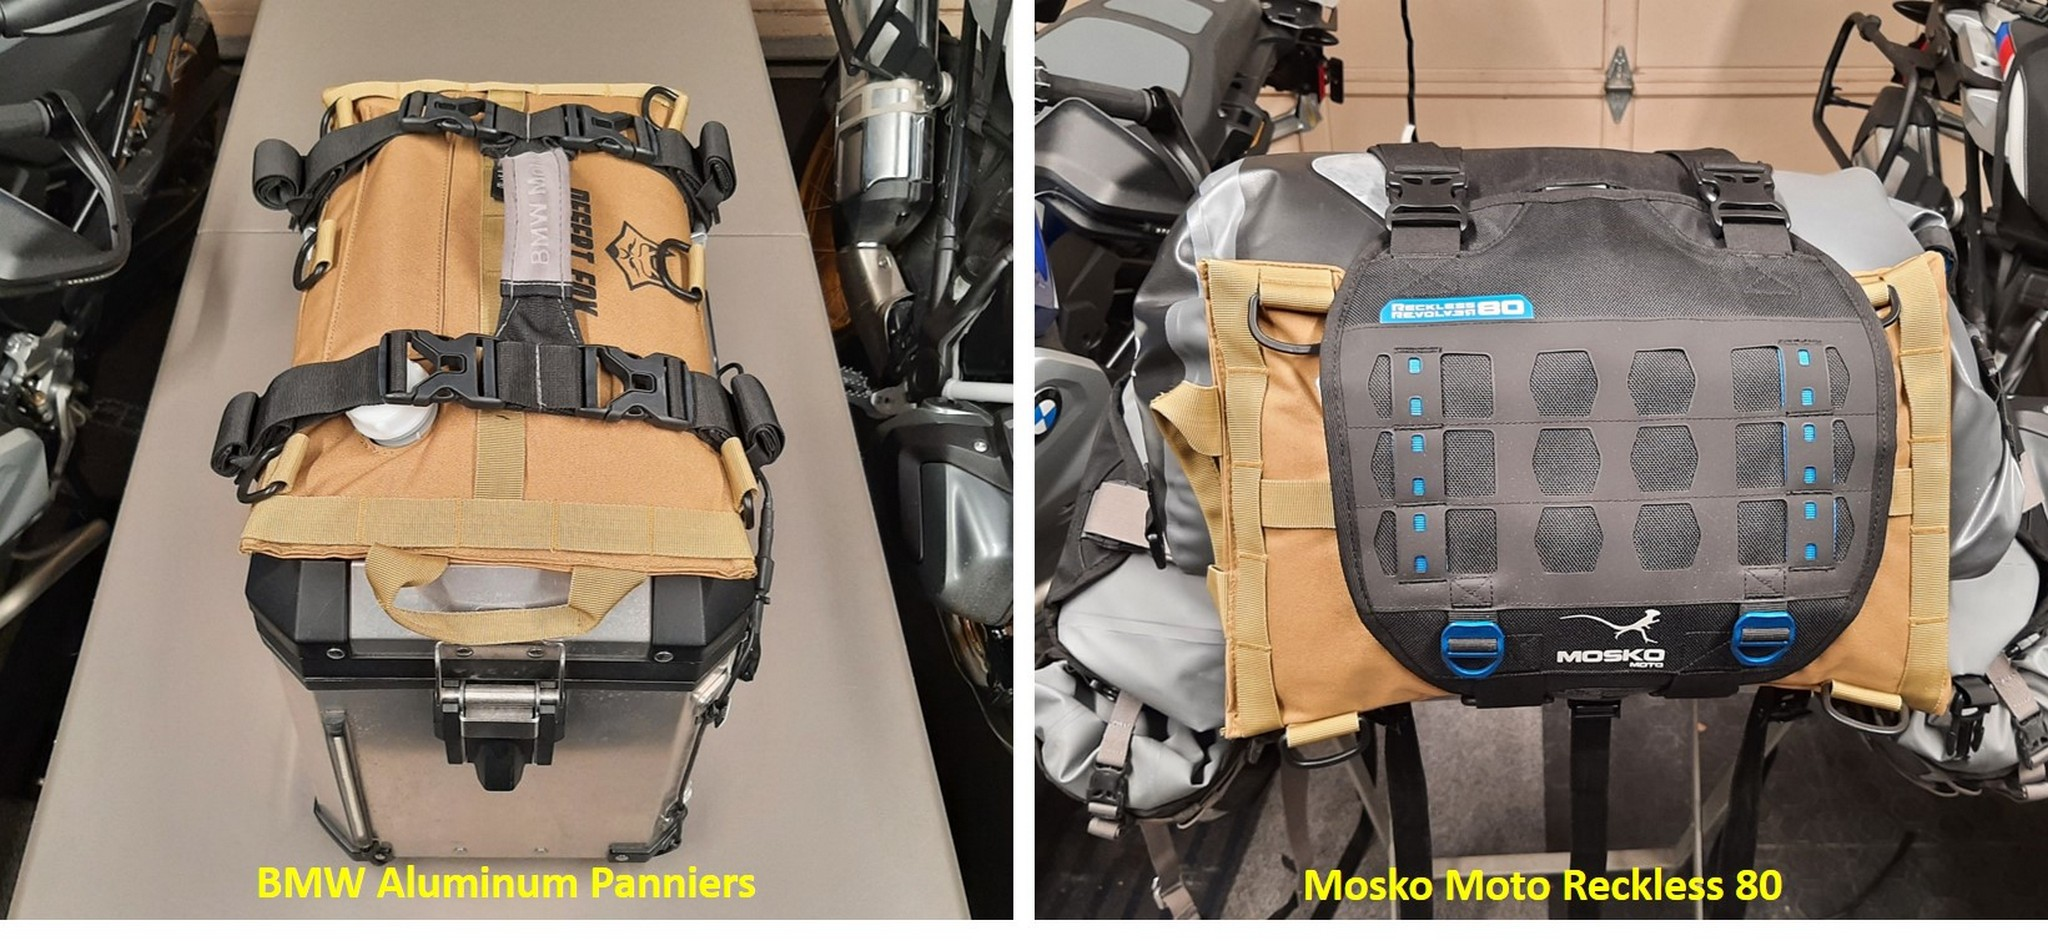 Fuel cell attached to different motorcycle accessories